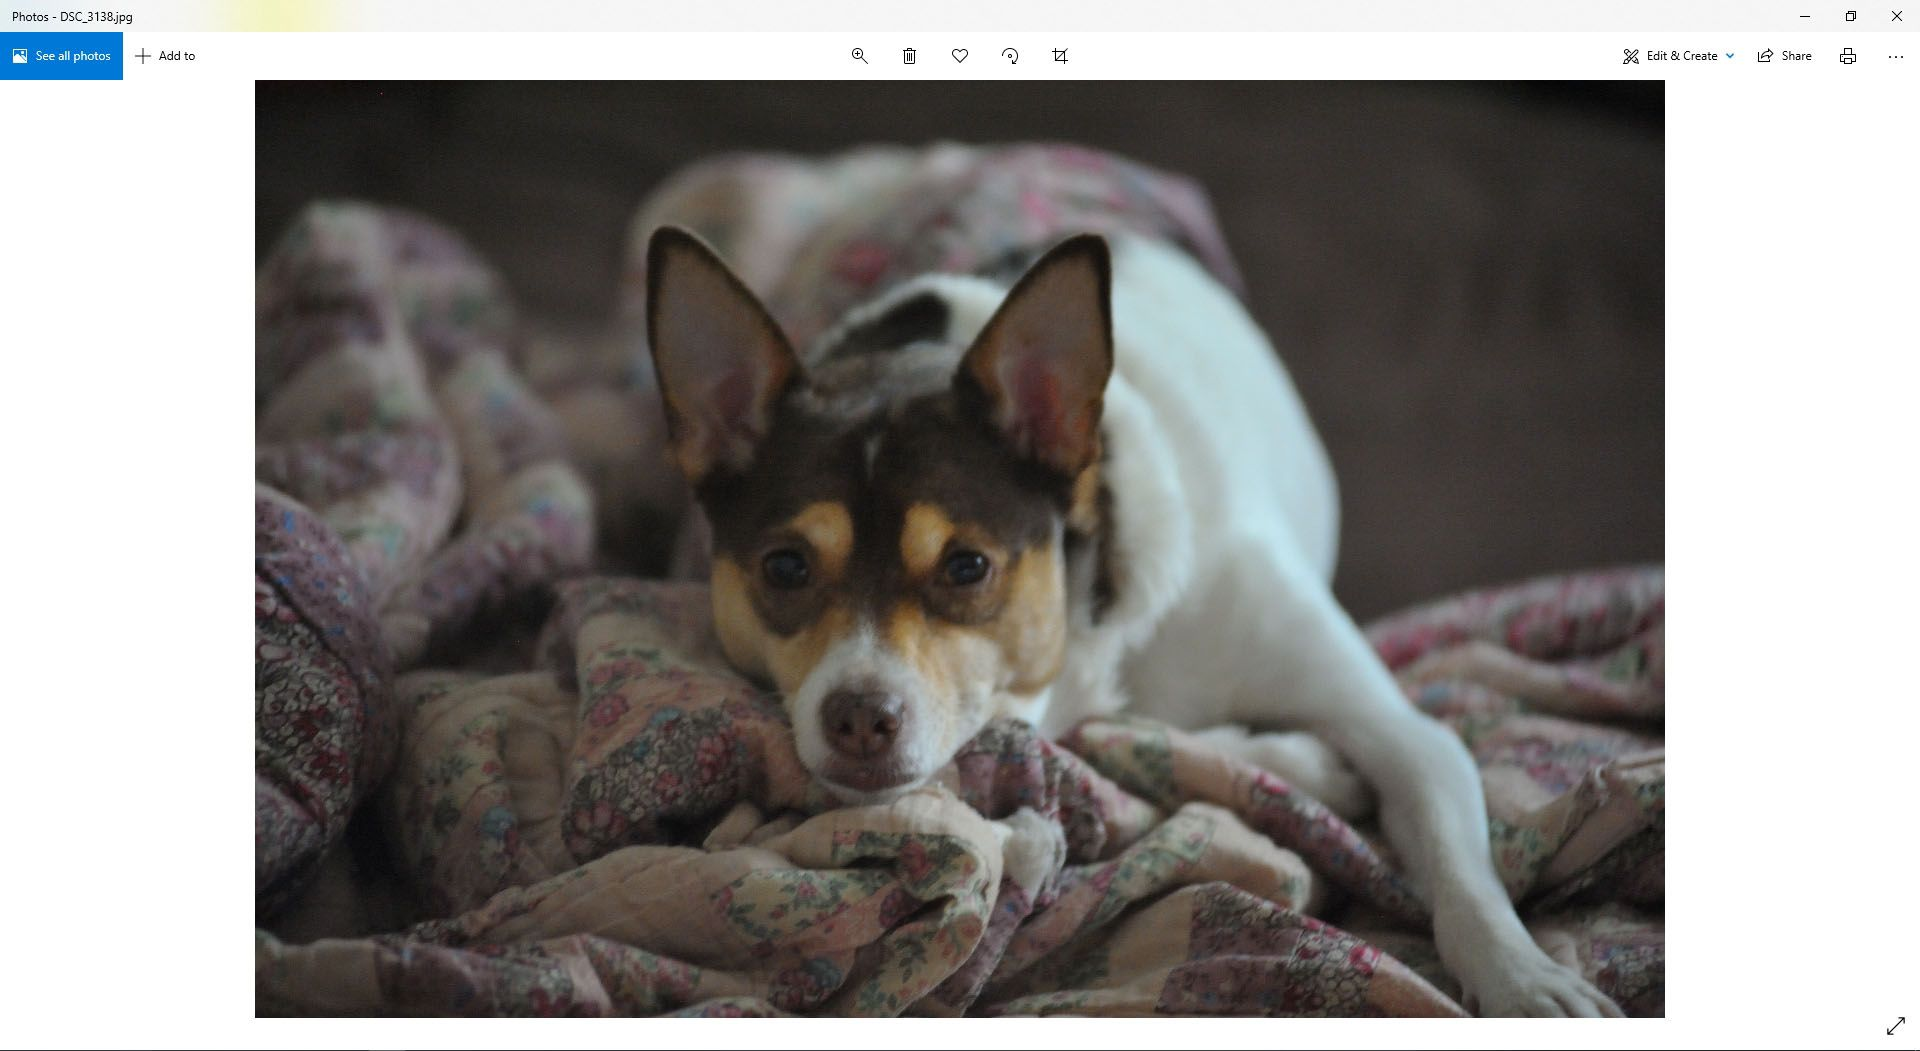 An image of a dog has been opened in Windows 10.